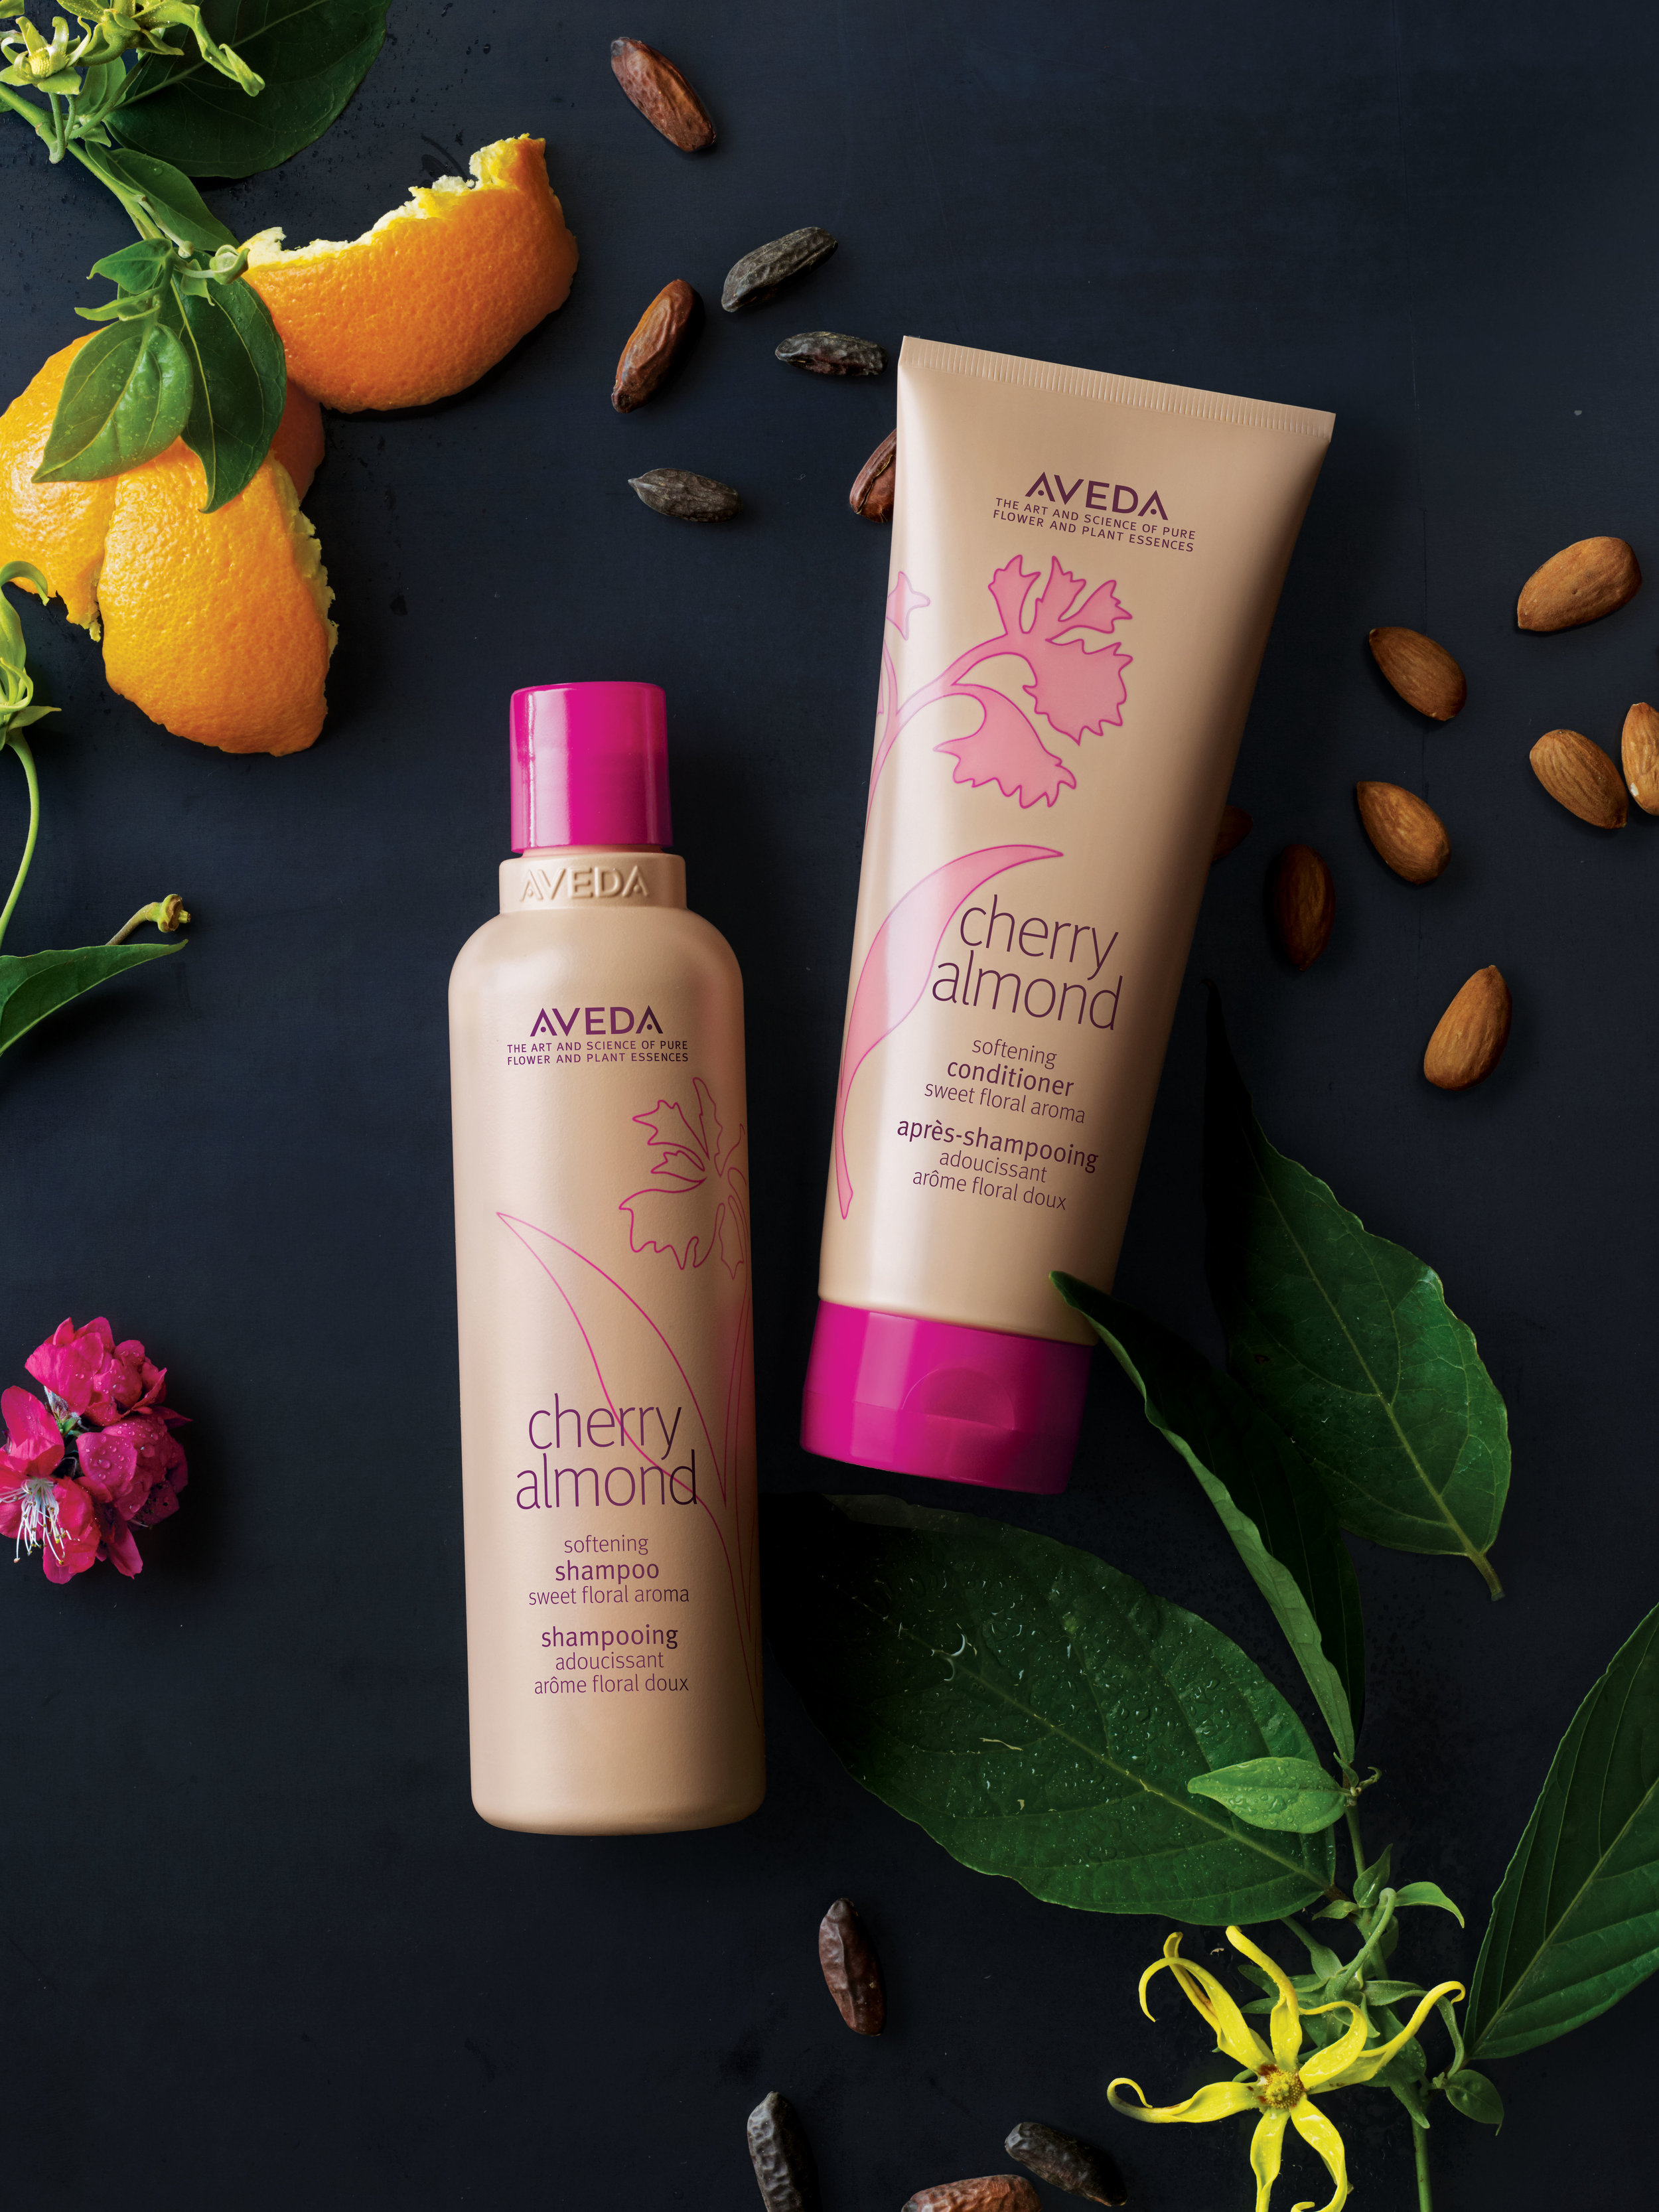 Sweet by nature, wild at heart.   Cherry Almond shampoo and conditioner • 98% naturally derived • Touchably soft hair • Naturally sweet aroma